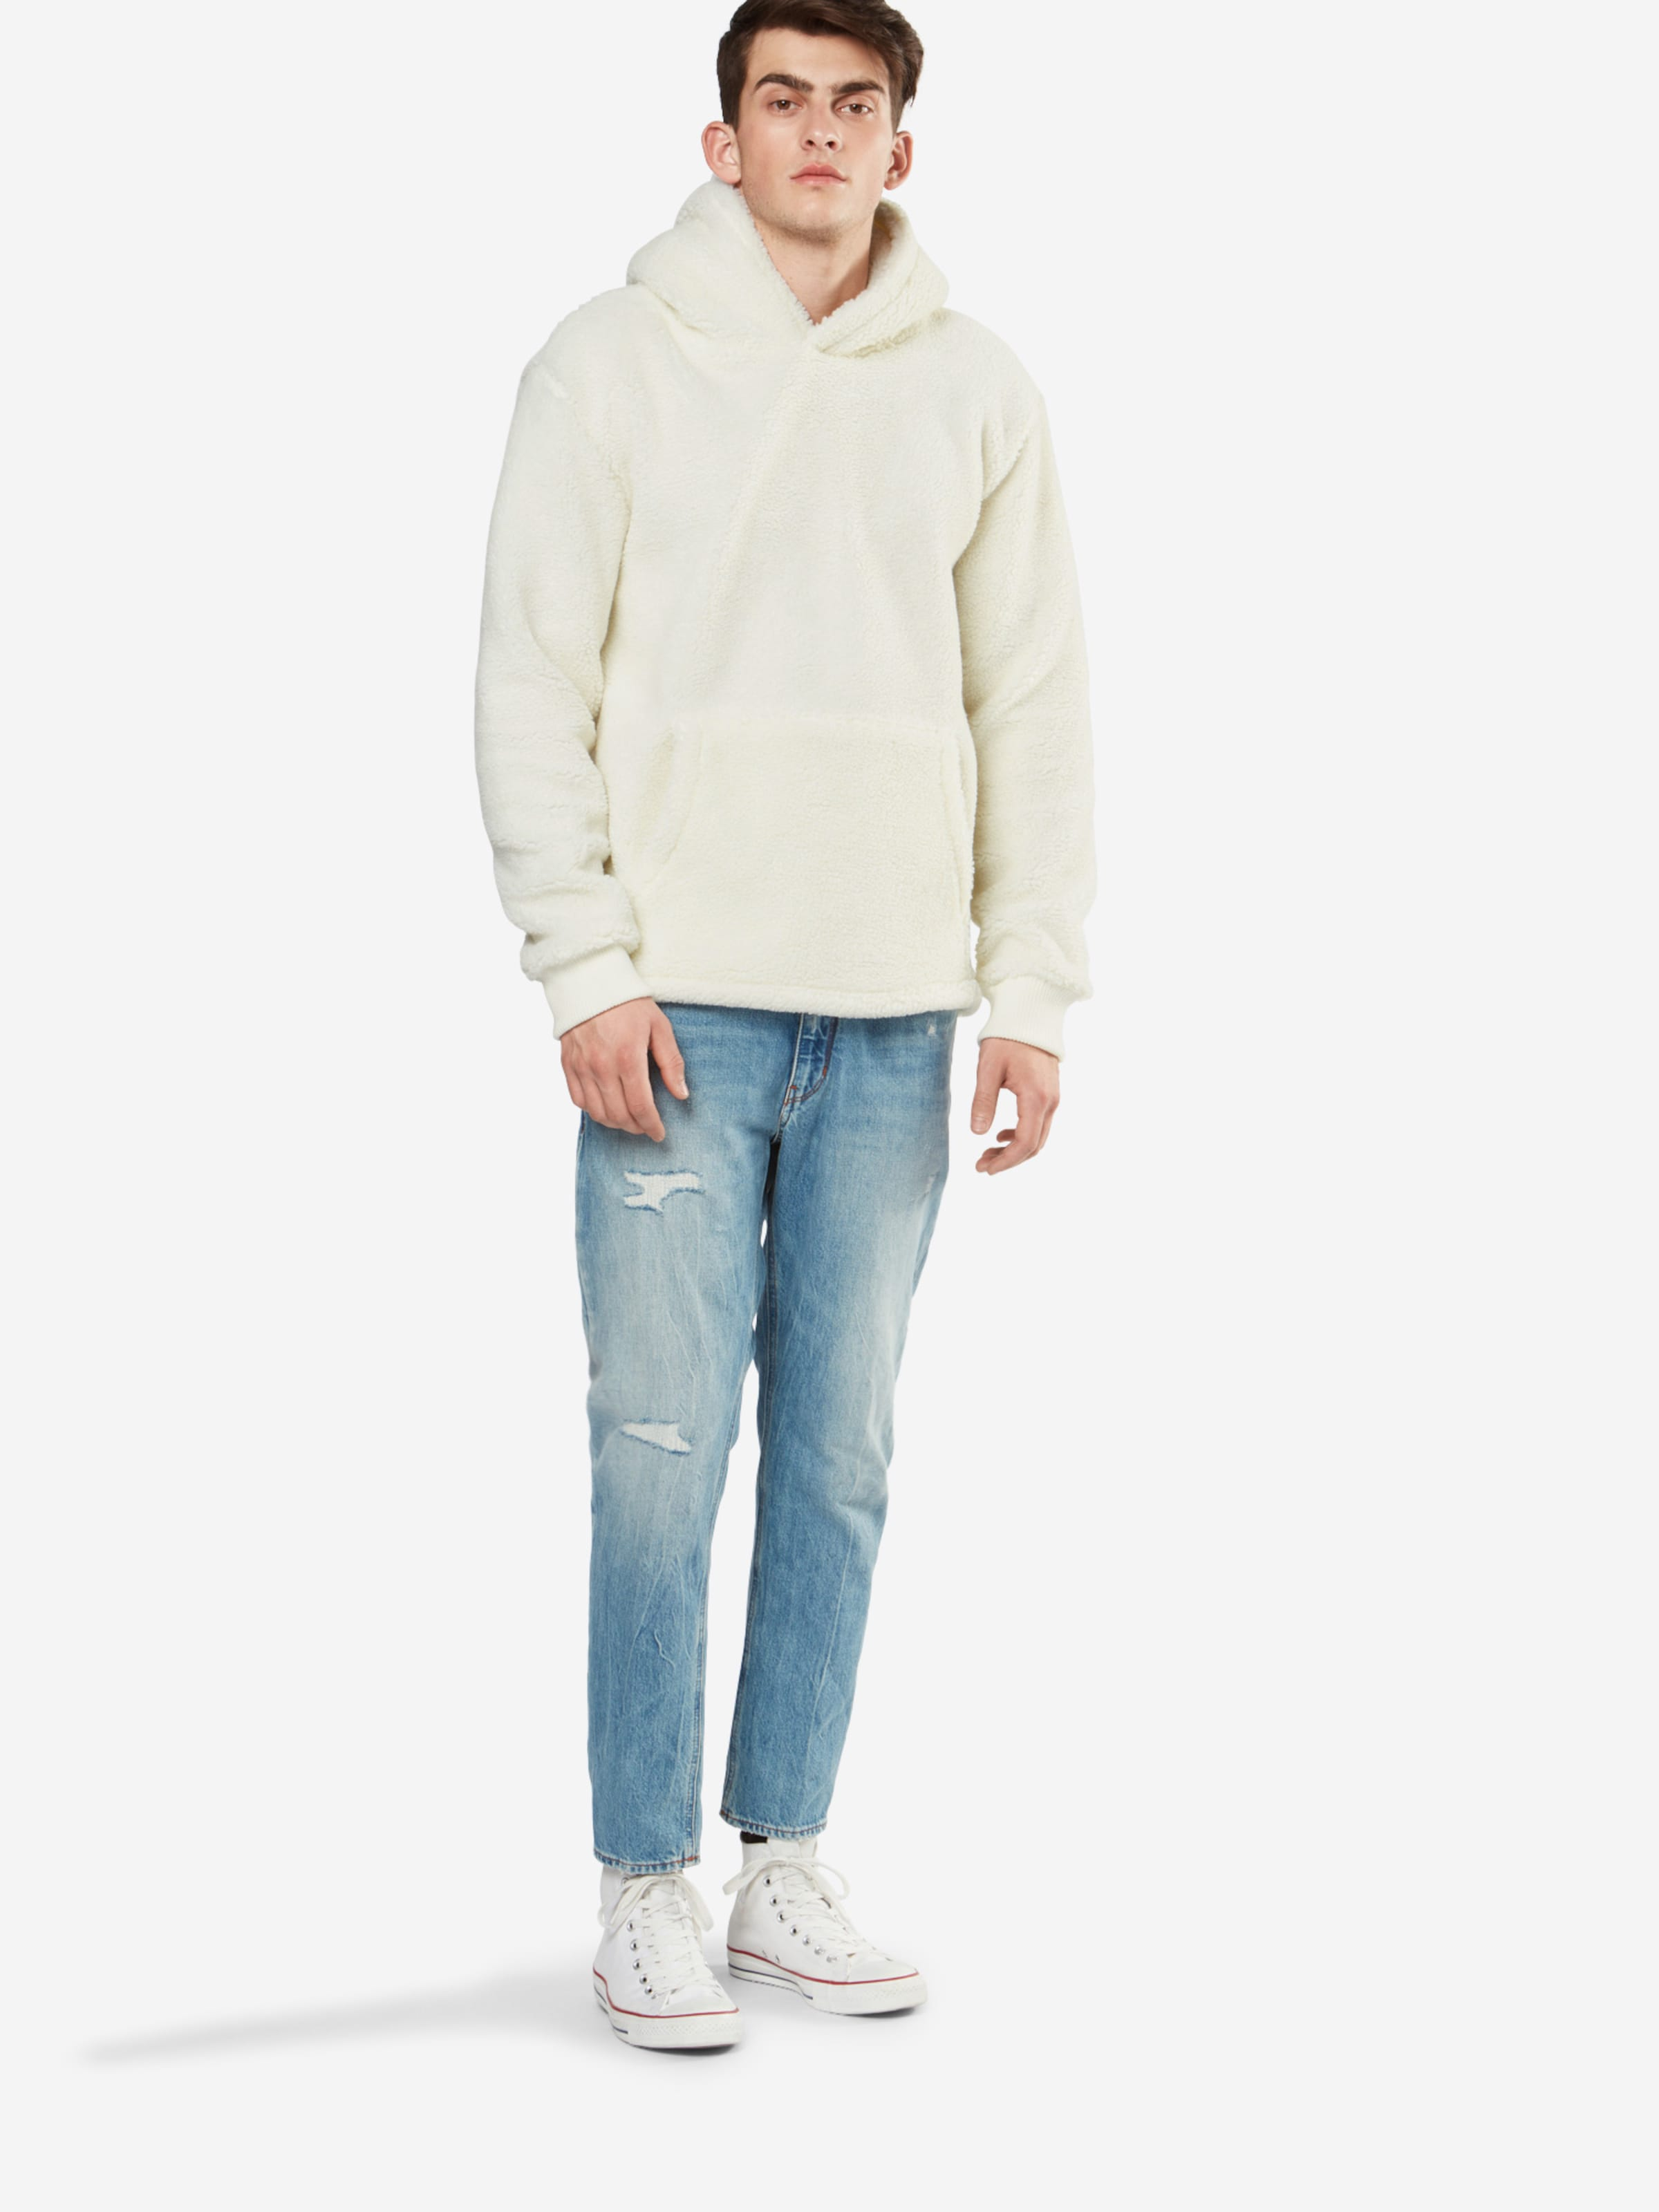 Review TEDDY' Pullover 'OVERSIZED TEDDY' 'OVERSIZED Review Pullover z5Uq6fn